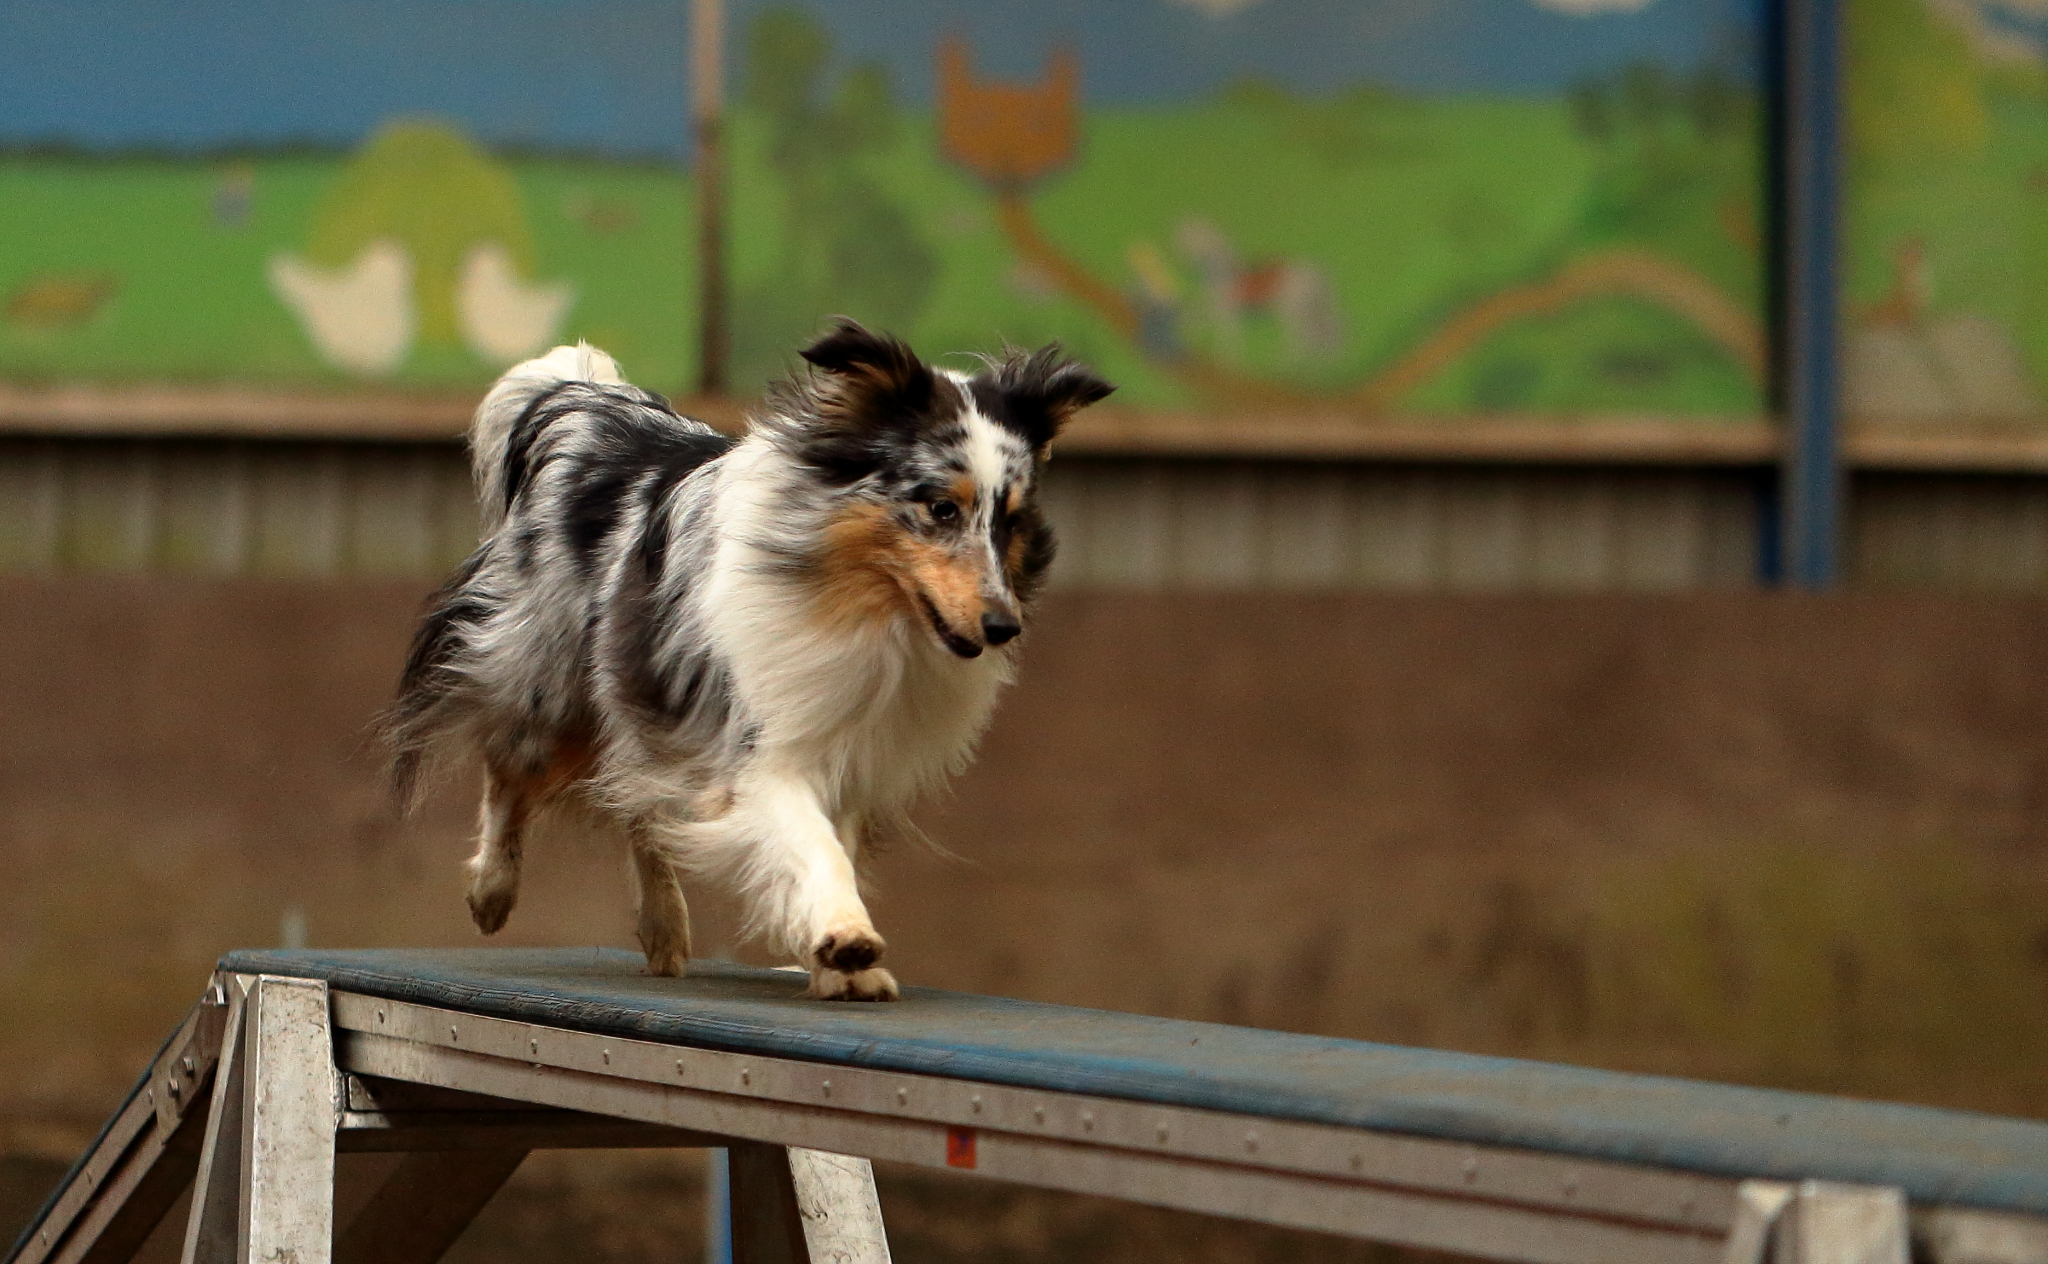 Party Time sheltie